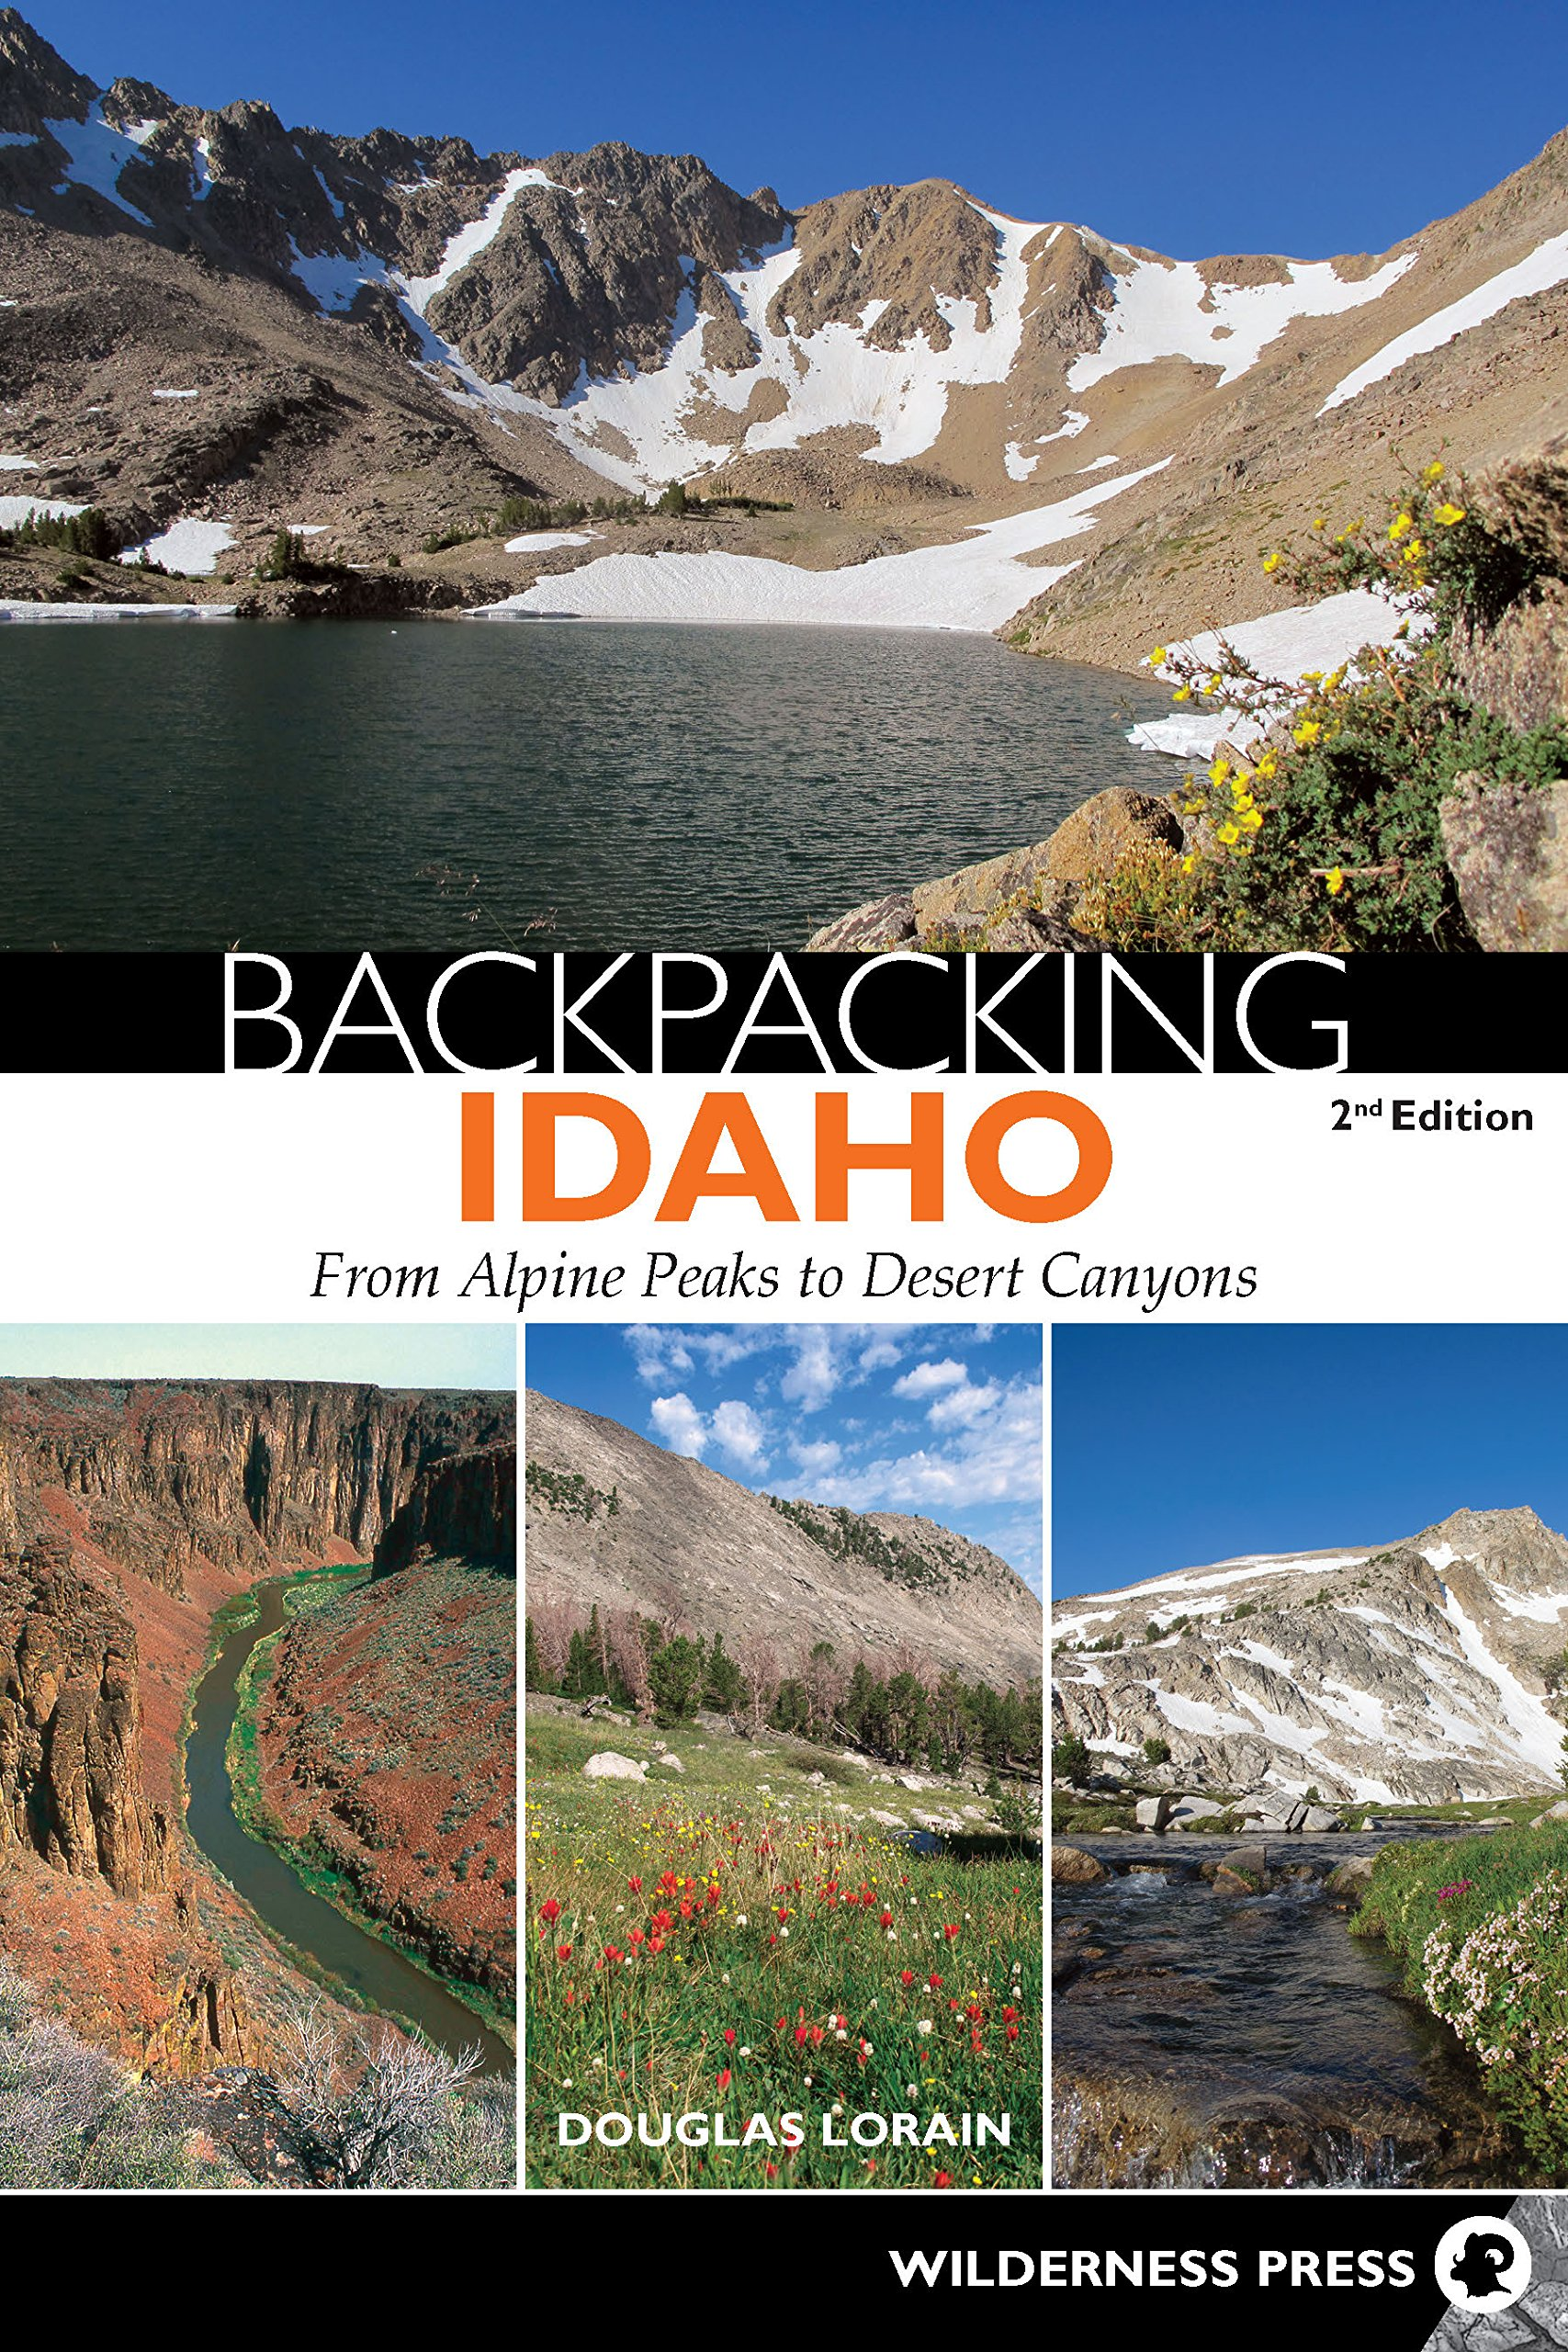 Backpacking Idaho: From Alpine Peaks to Desert Canyons PDF